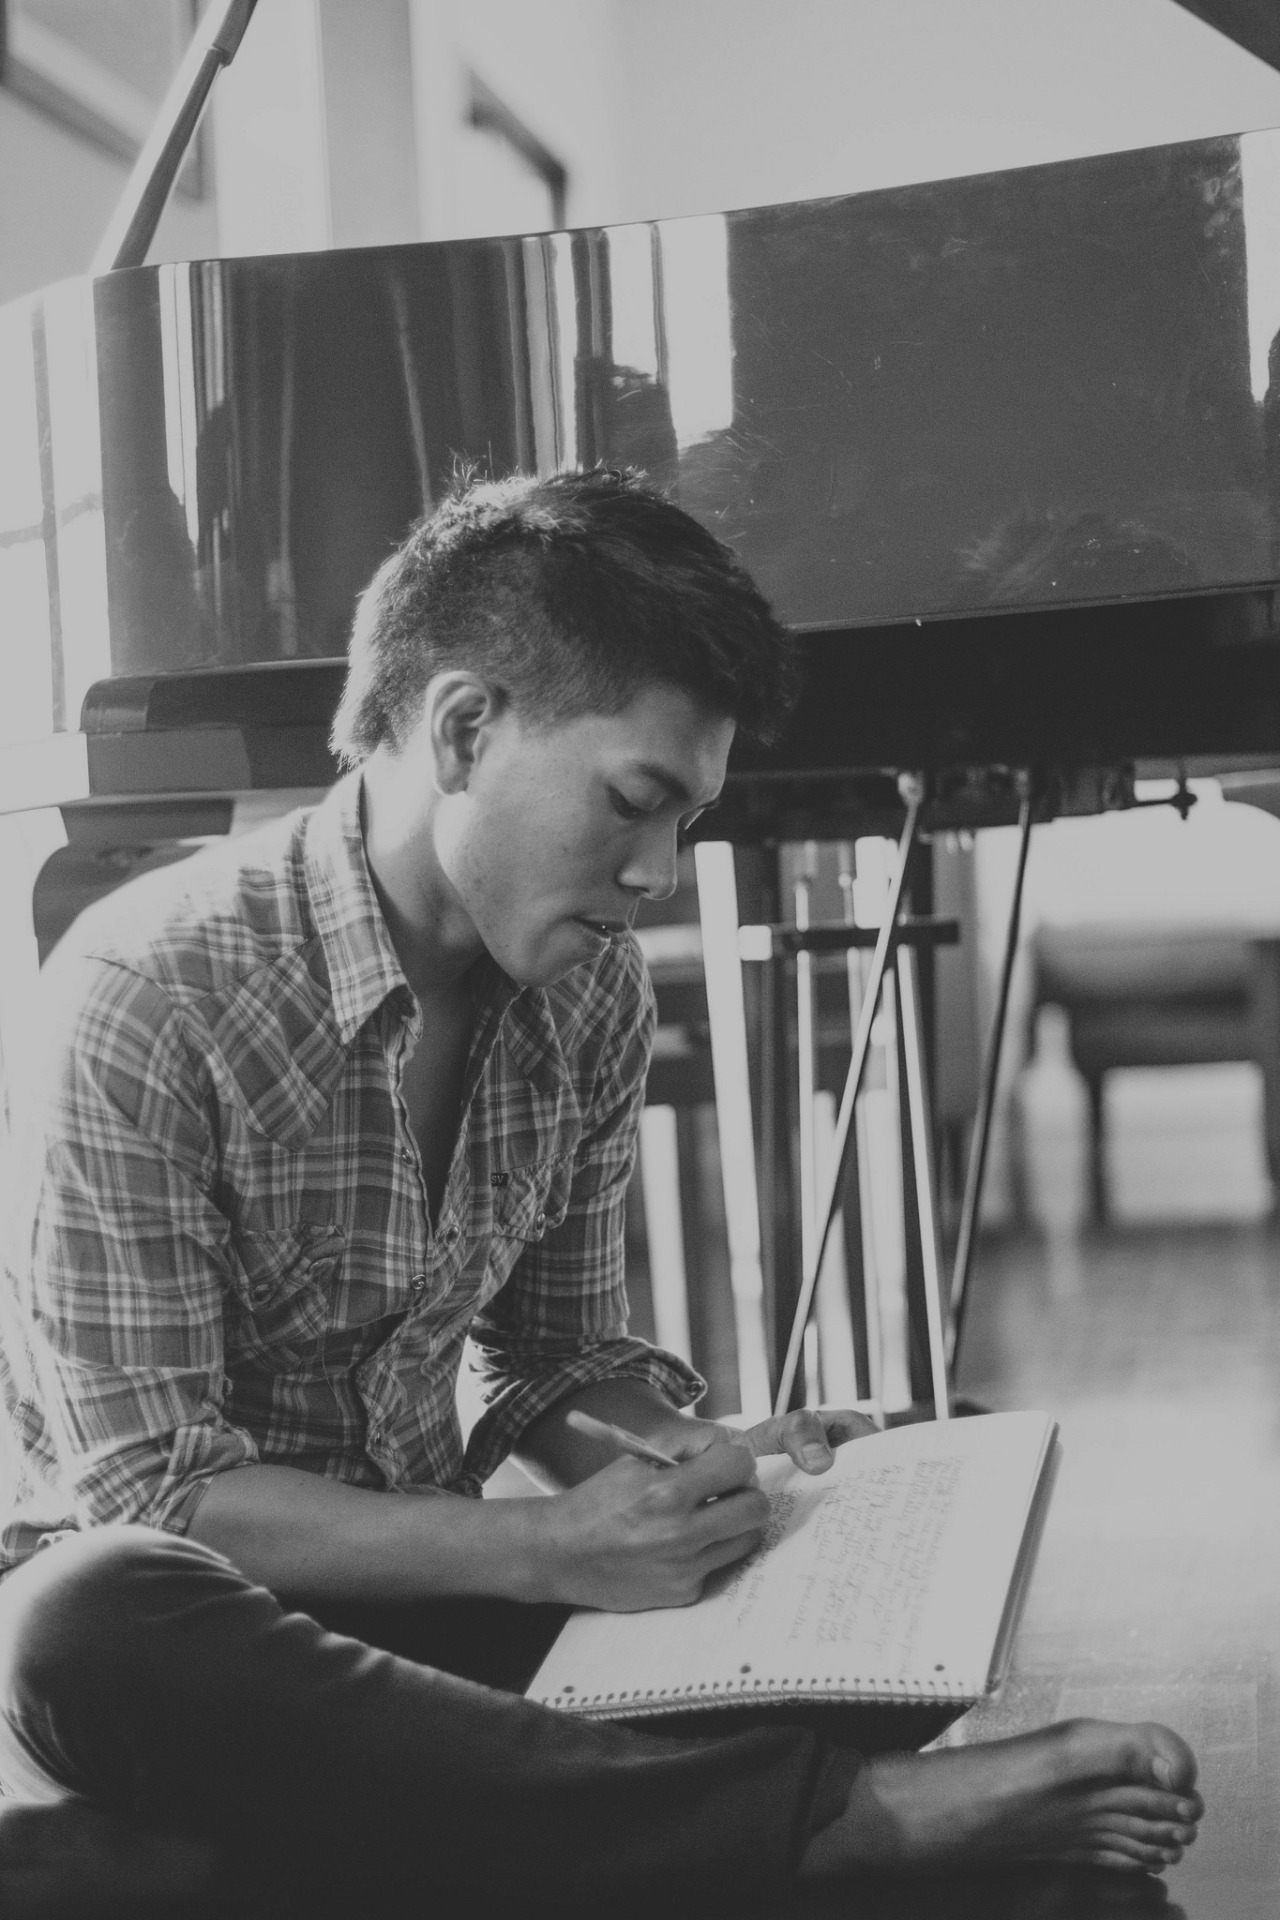 One of my favorites from the last photoshoot.  #piano   #songwriter   #opus1  #acoustic   #newalbum